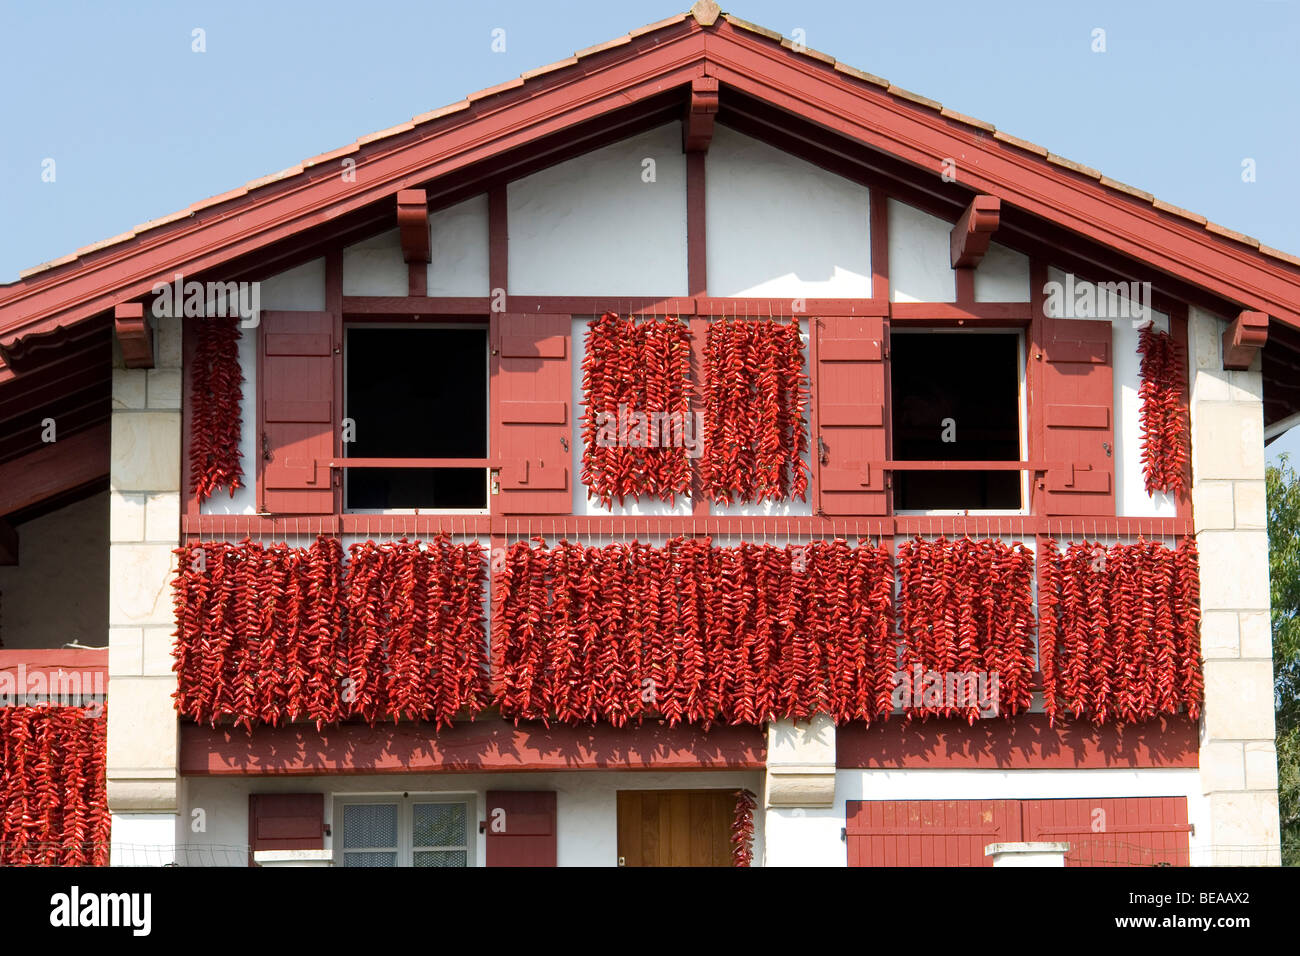 Red peppers drying on the frontage of a basque house espelette stock photo royalty free image for Photos maison basque